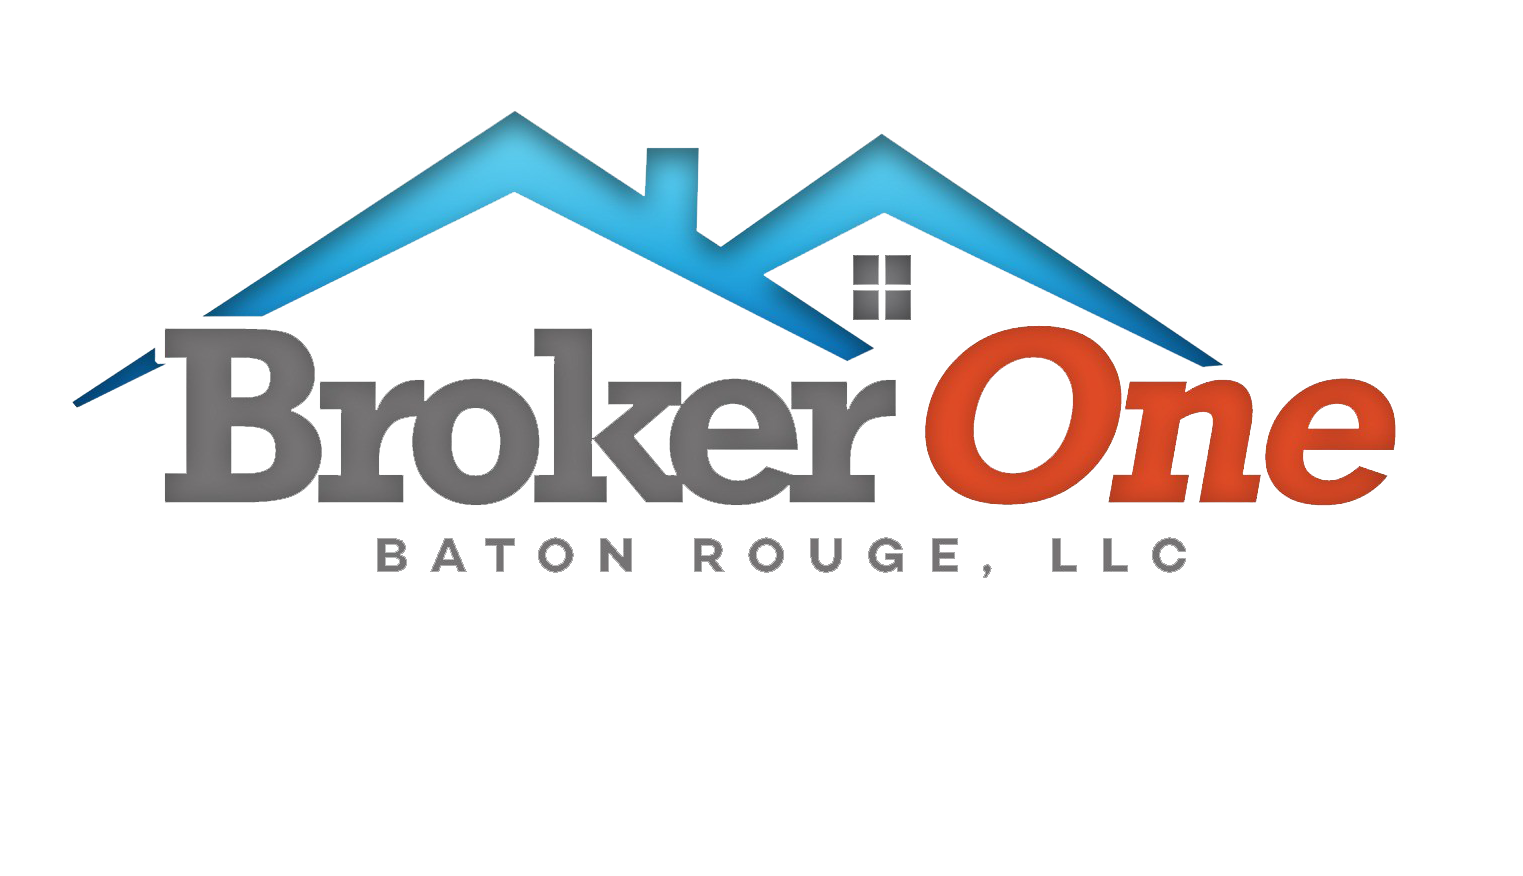 Broker One Baton Rouge Logo